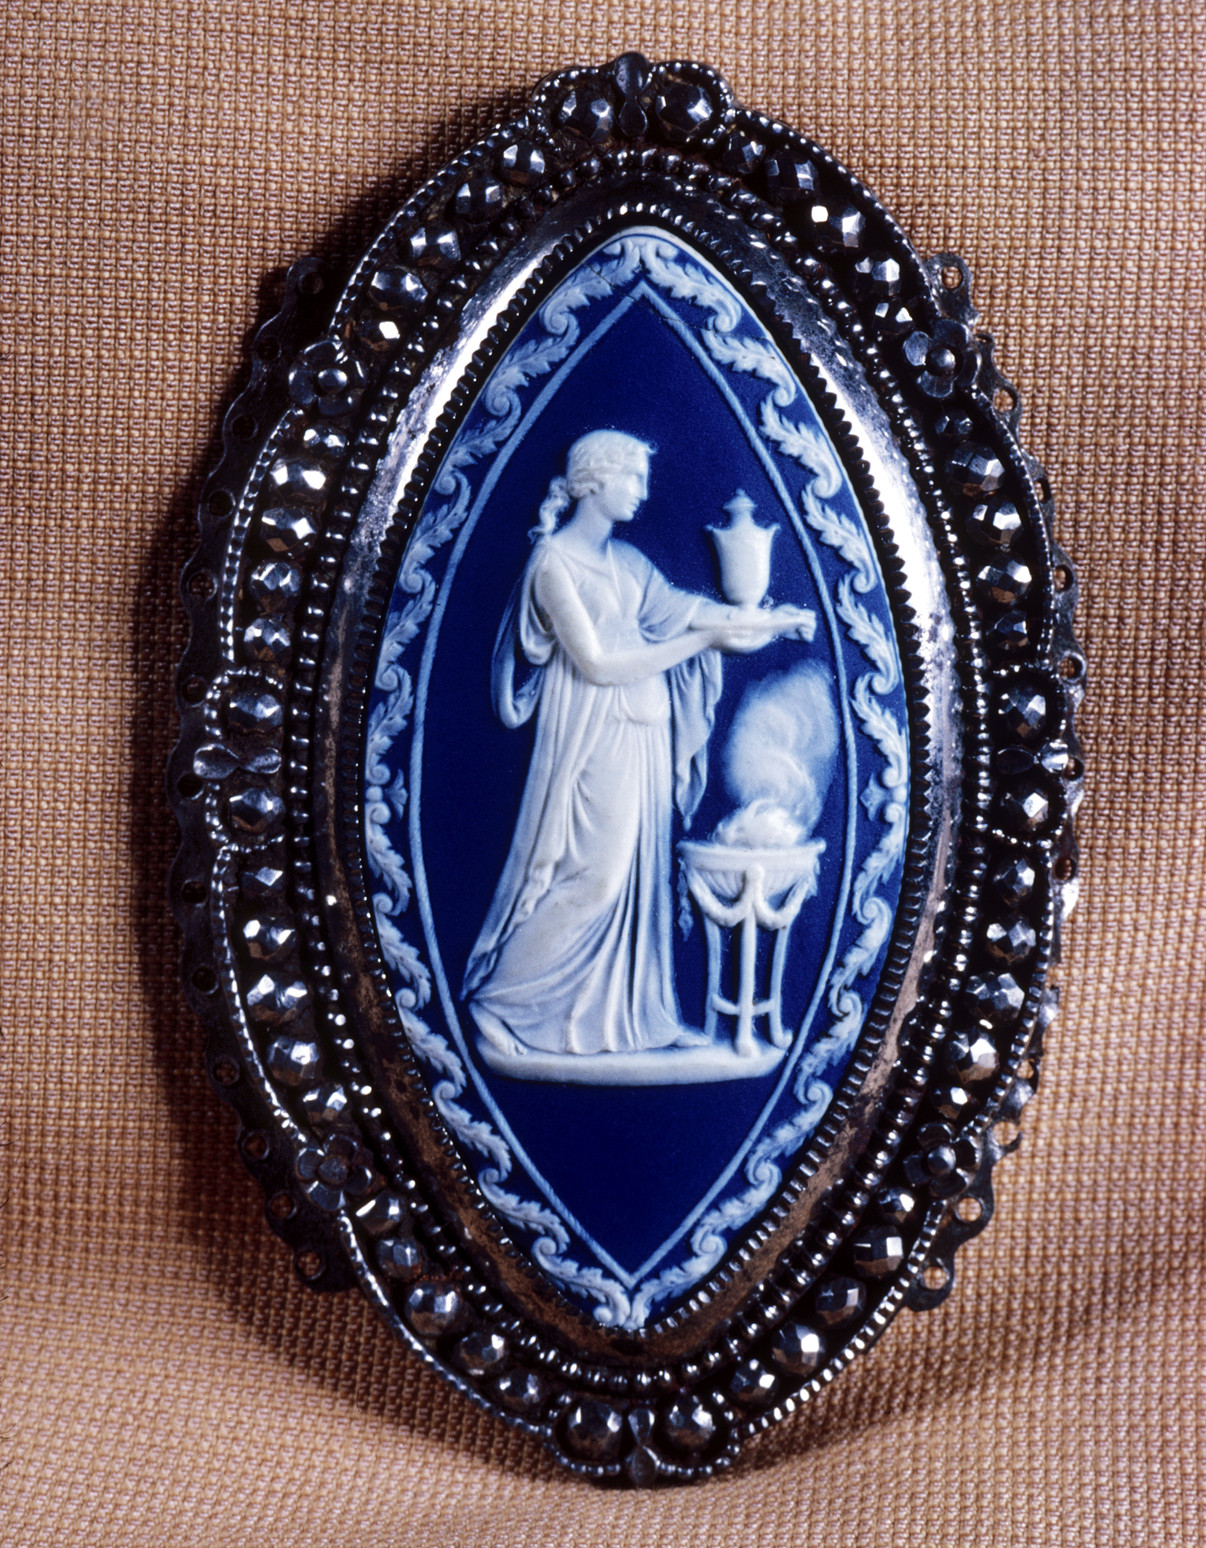 c. 1790. Belt Clasp with a Female Making a Sacrifice. Josiah Wedgwood with metal frame by Matthew Boulton. Credit Walters Art Museum